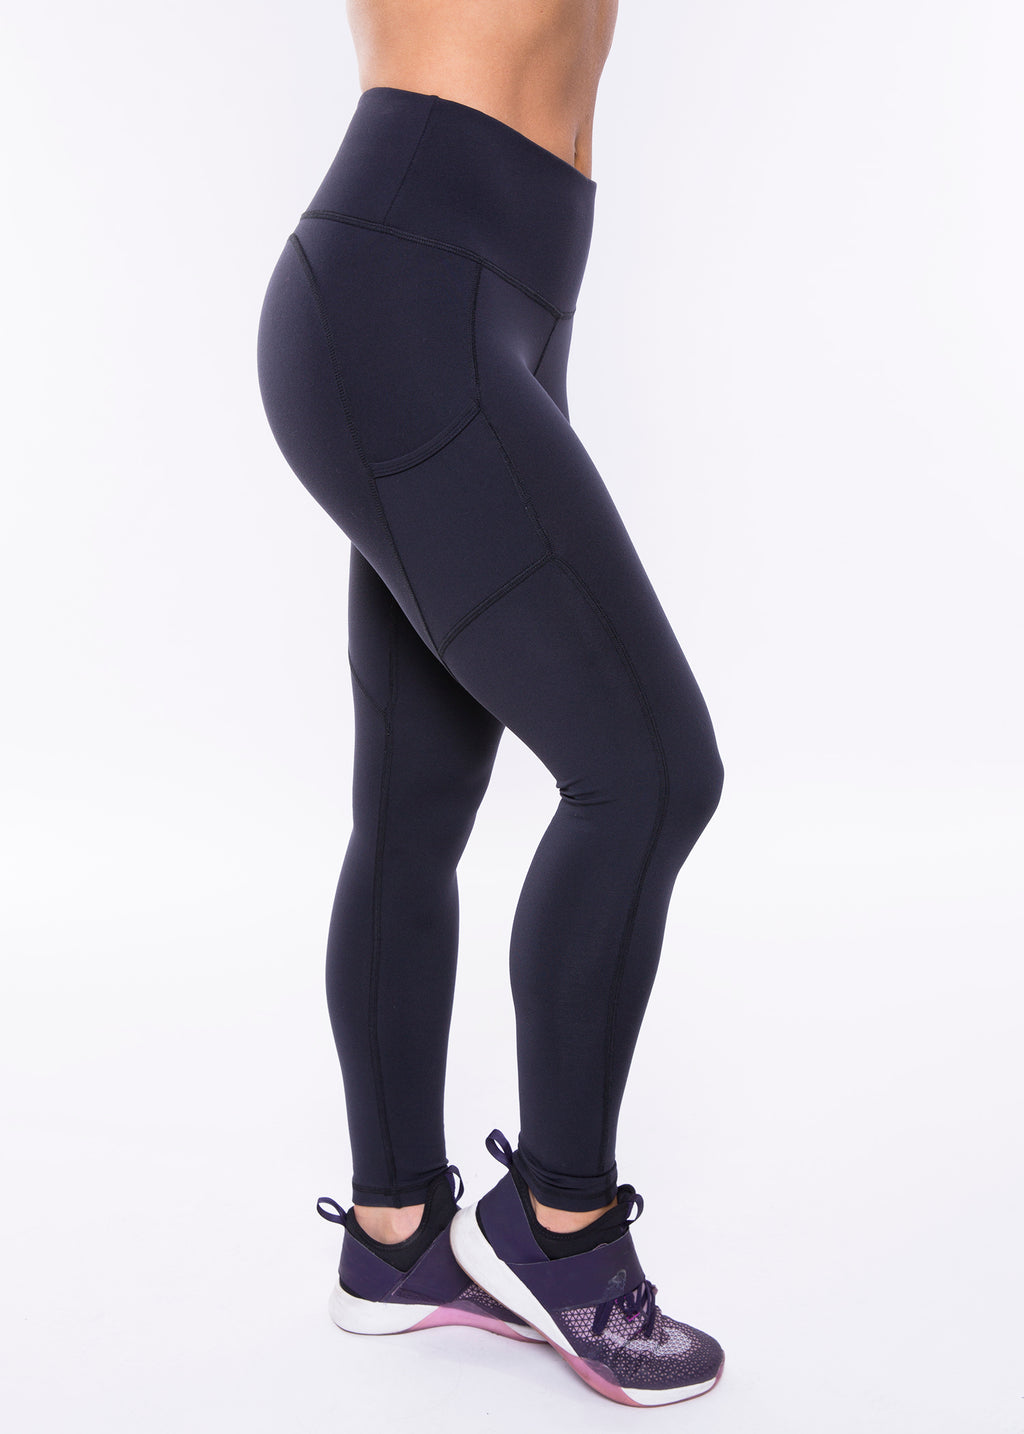 Heartcore Black Side Pocket Leggings